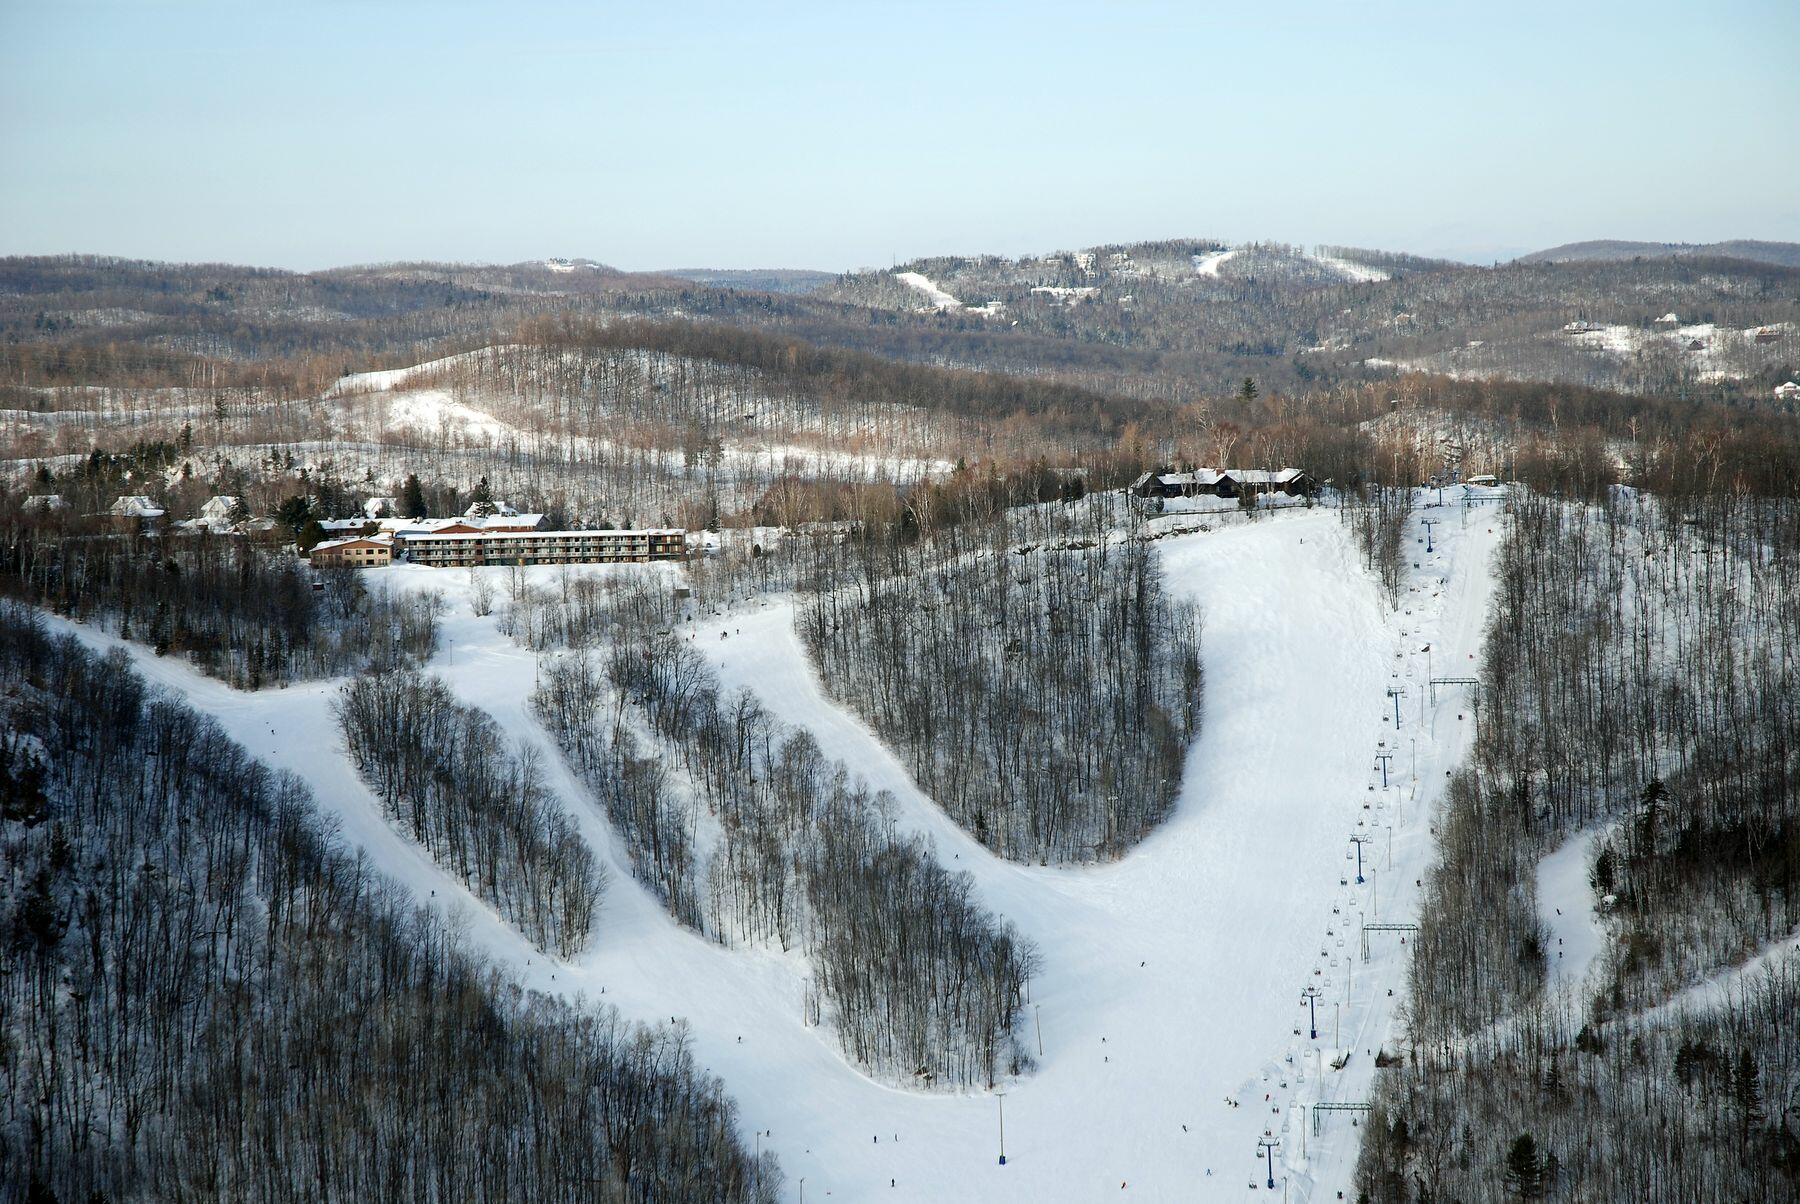 Ariel view of snow covered ski slope